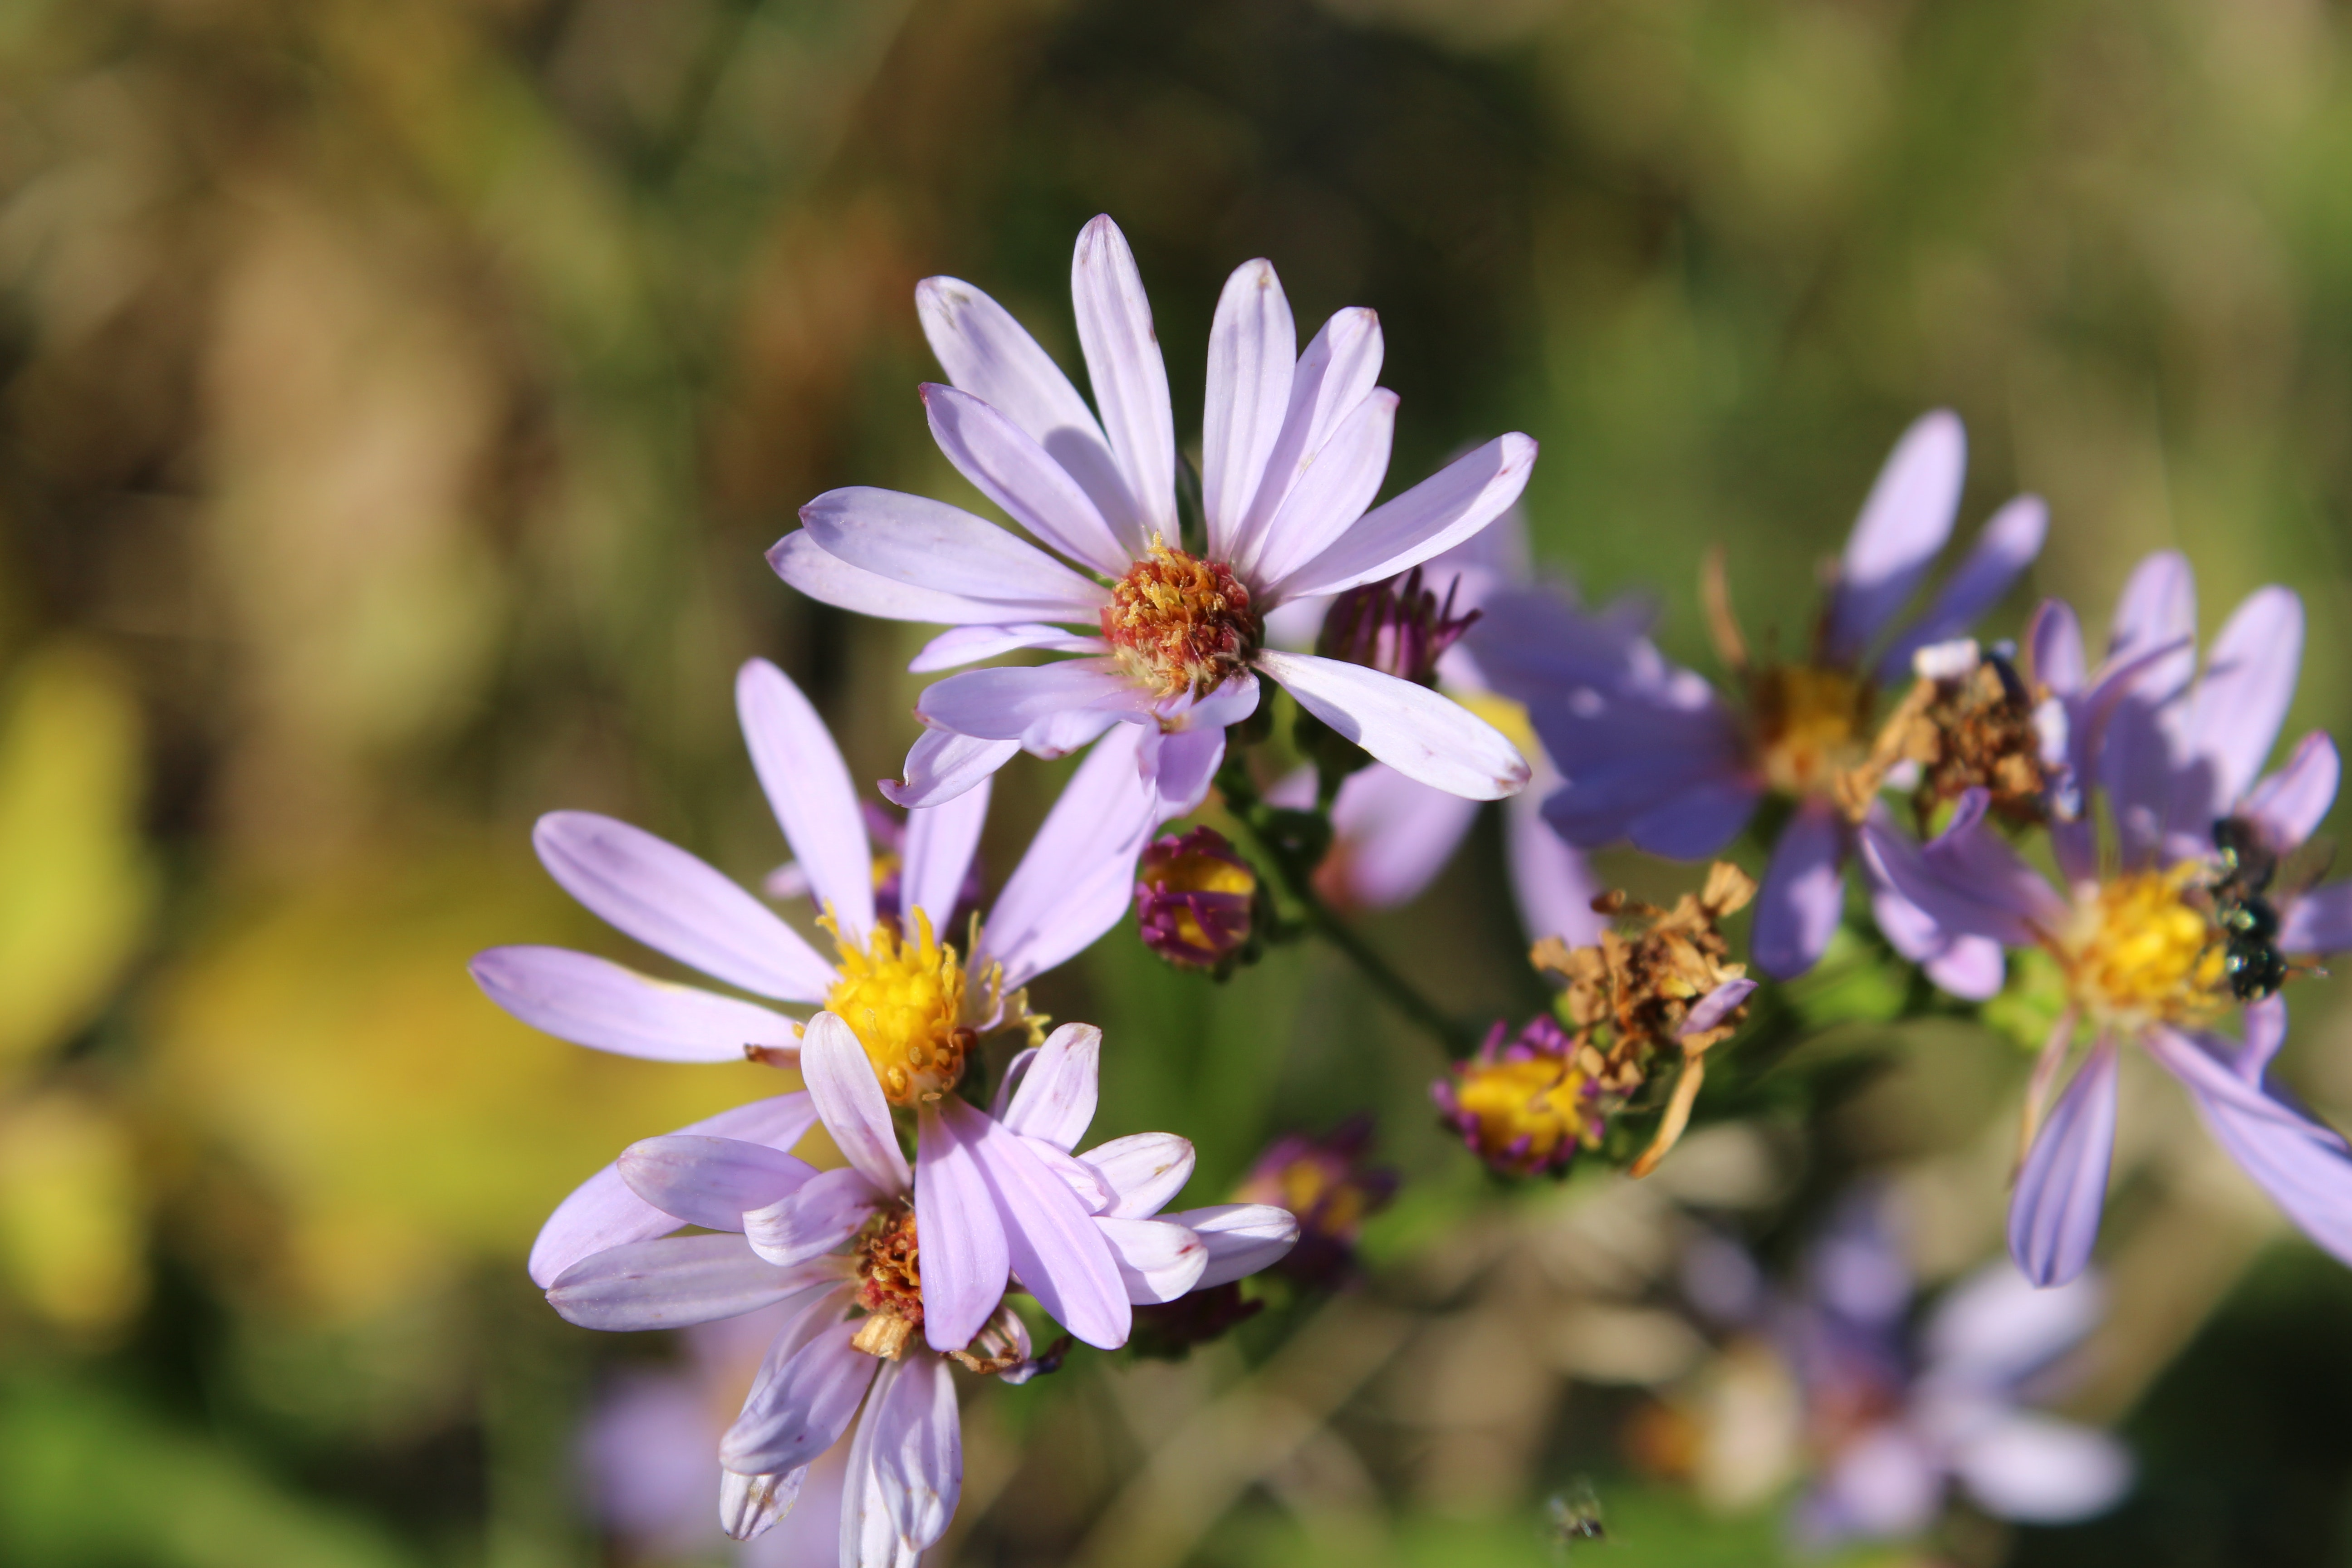 Purple Flower Macro Shot Shallow Focus, Growth, Garden, Insect, Flowers, HQ Photo